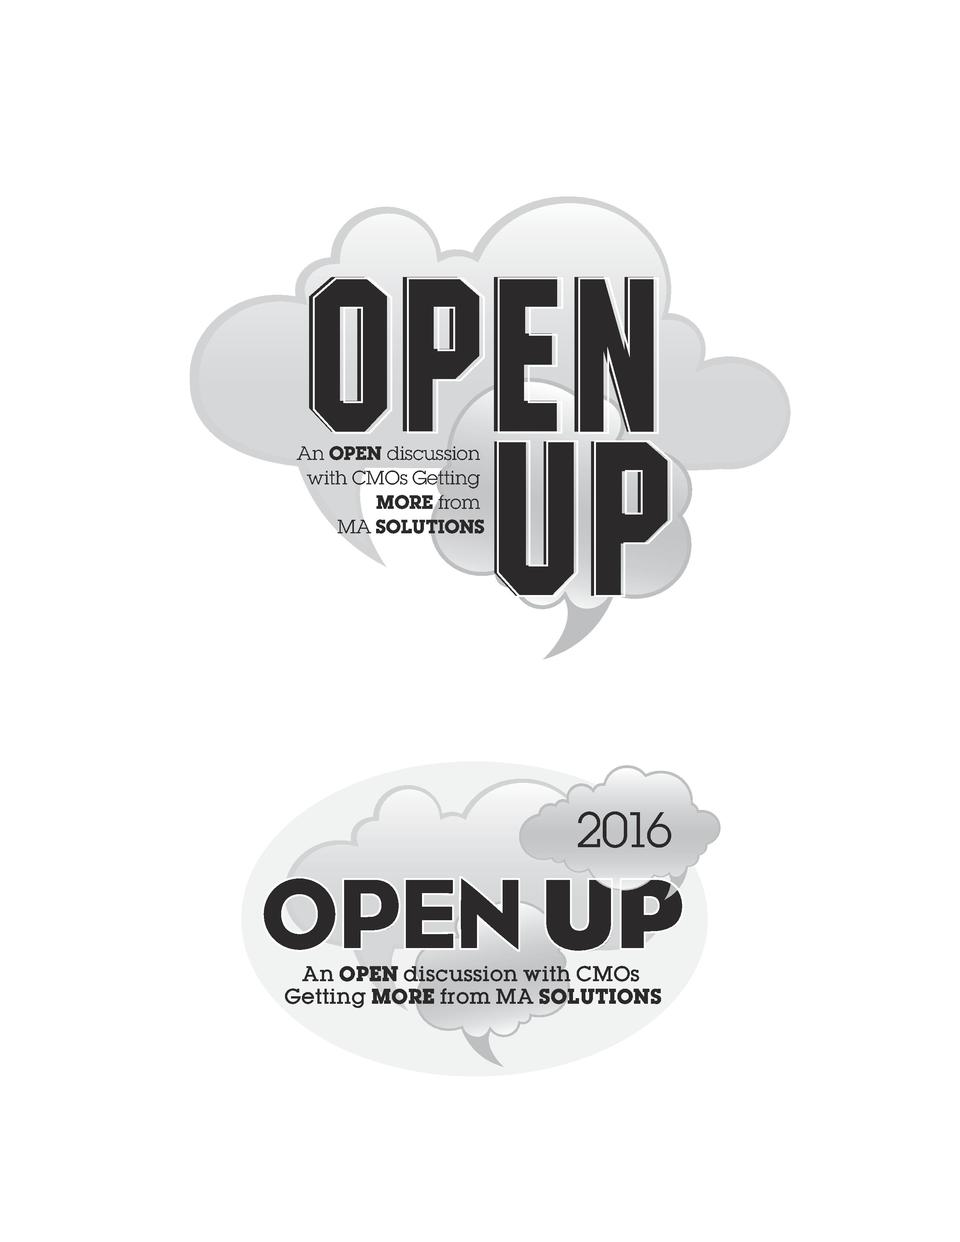 OPEN UP  An OPEN discussion with CMOs Getting MORE from MA SOLUTIONS  2016  OPEN UP An OPEN discussion with CMOs Getting M...